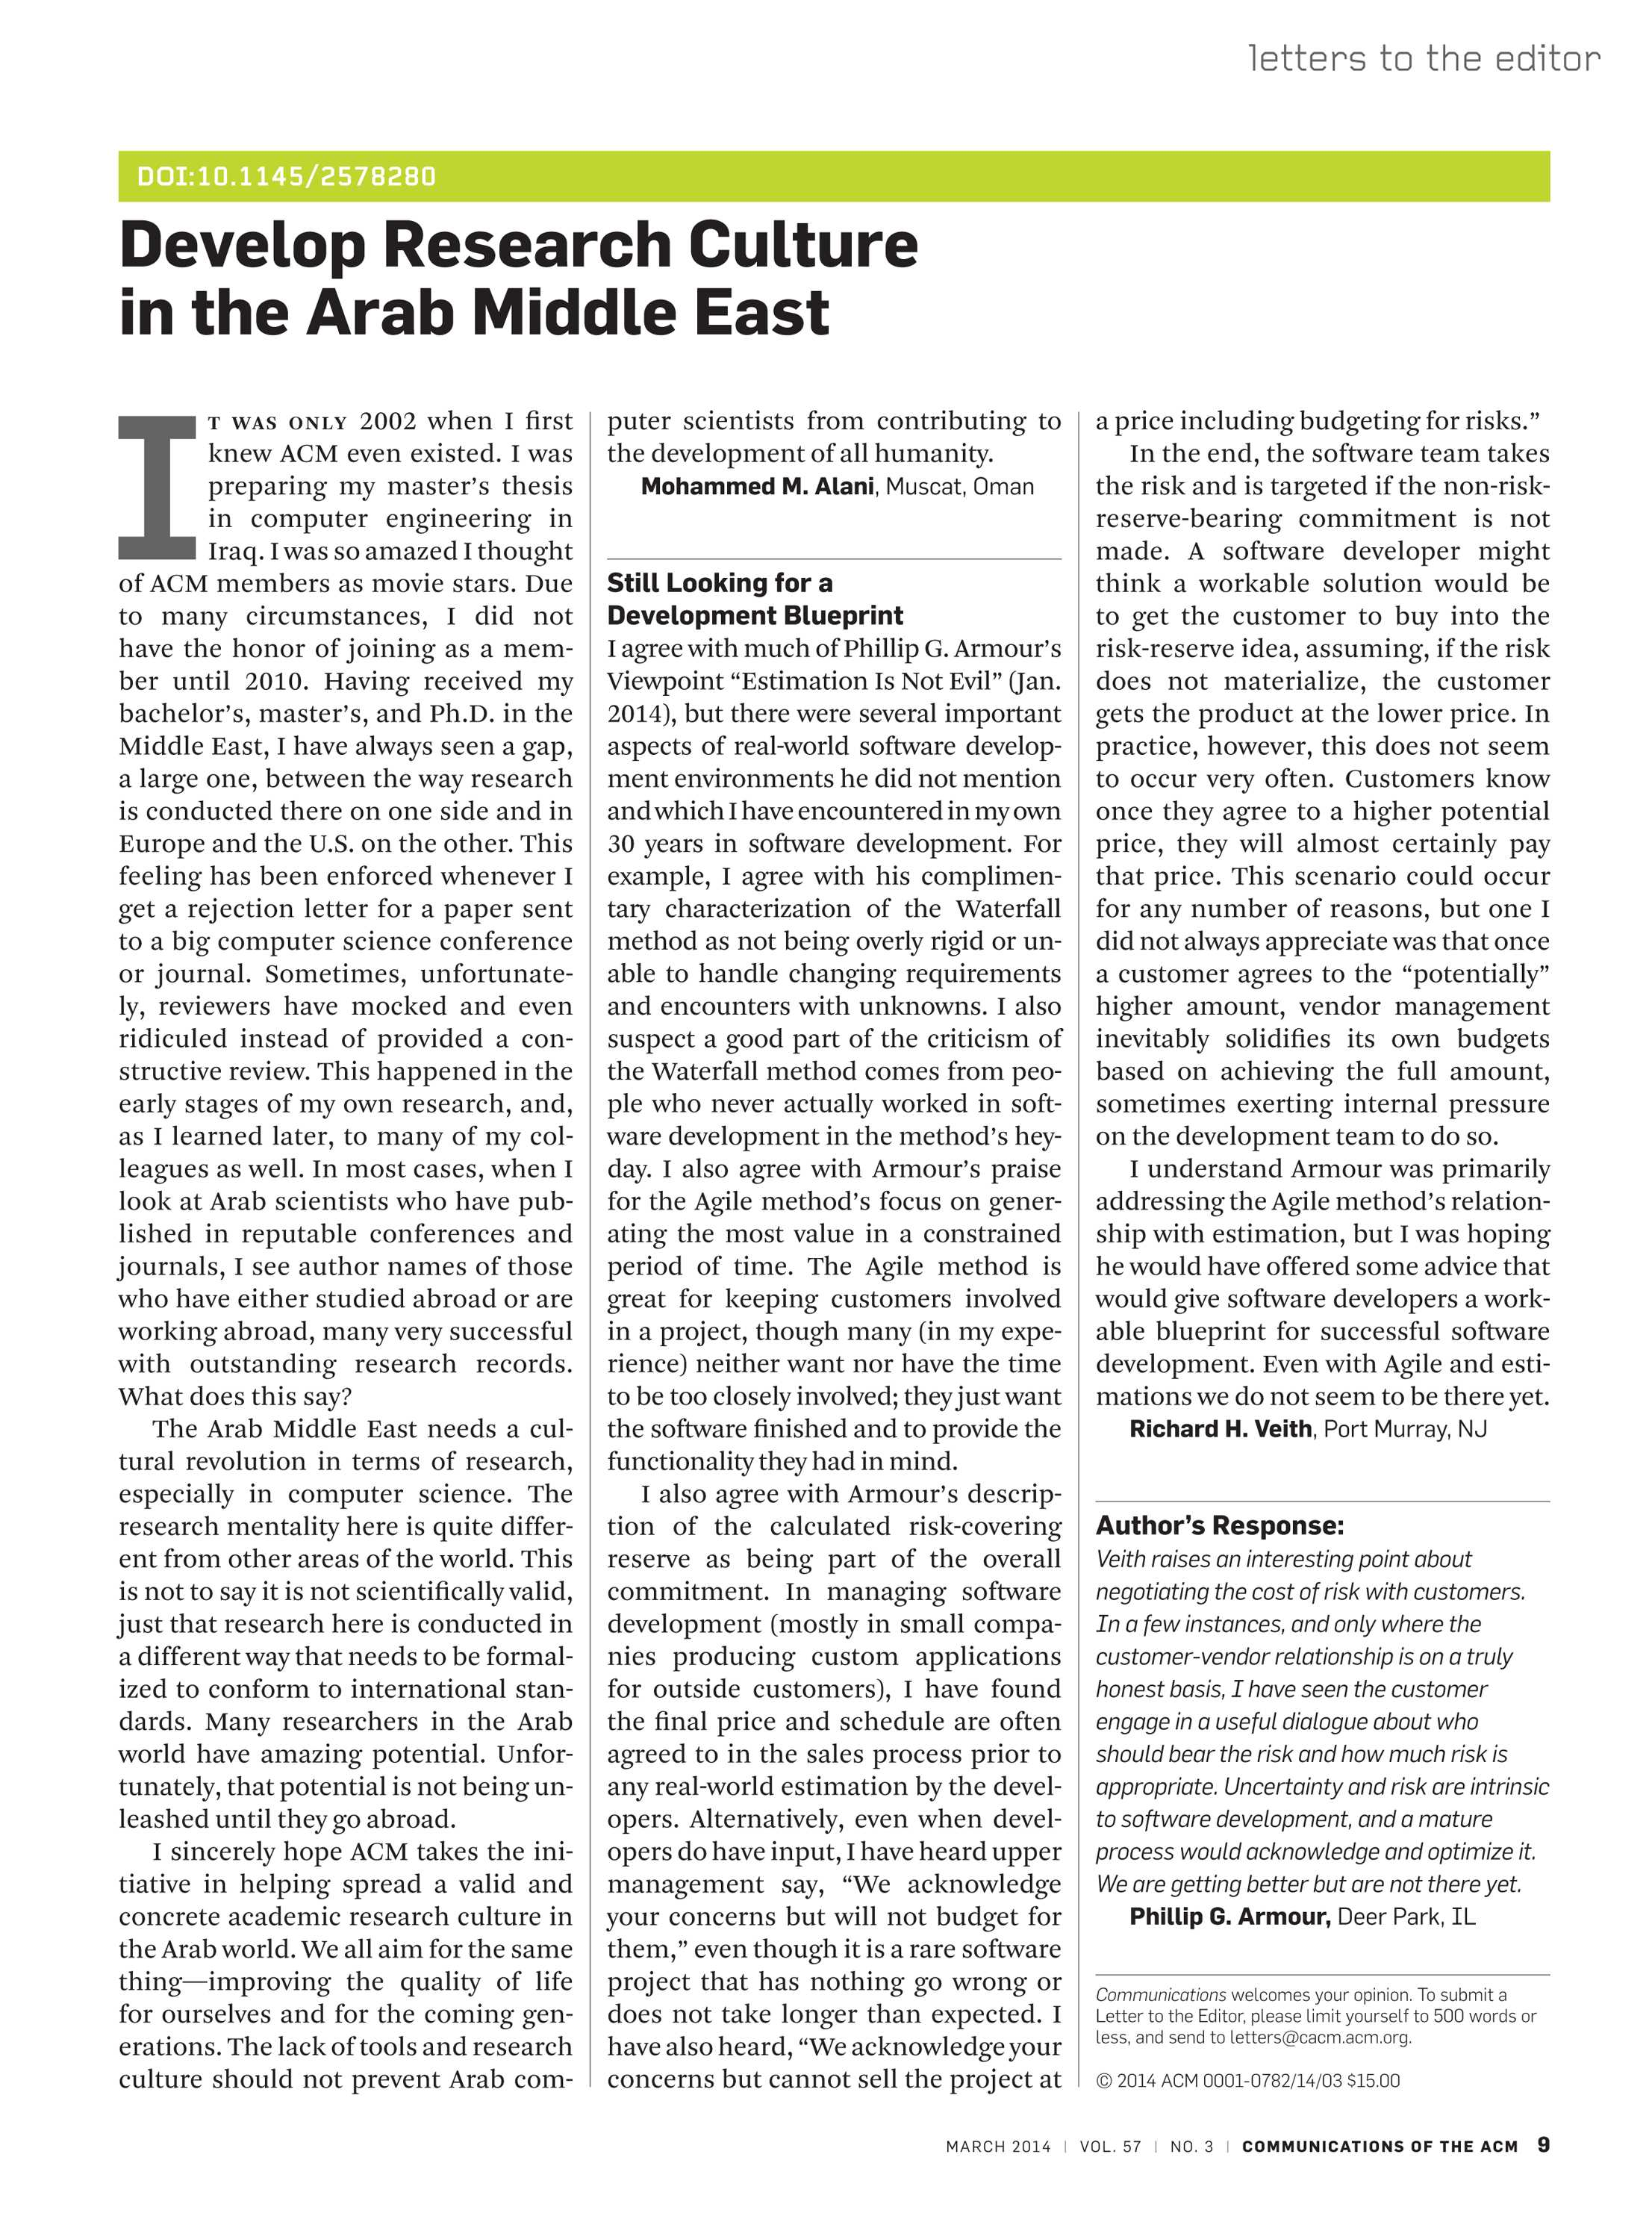 Communications of the ACM - March 2014 - page 9